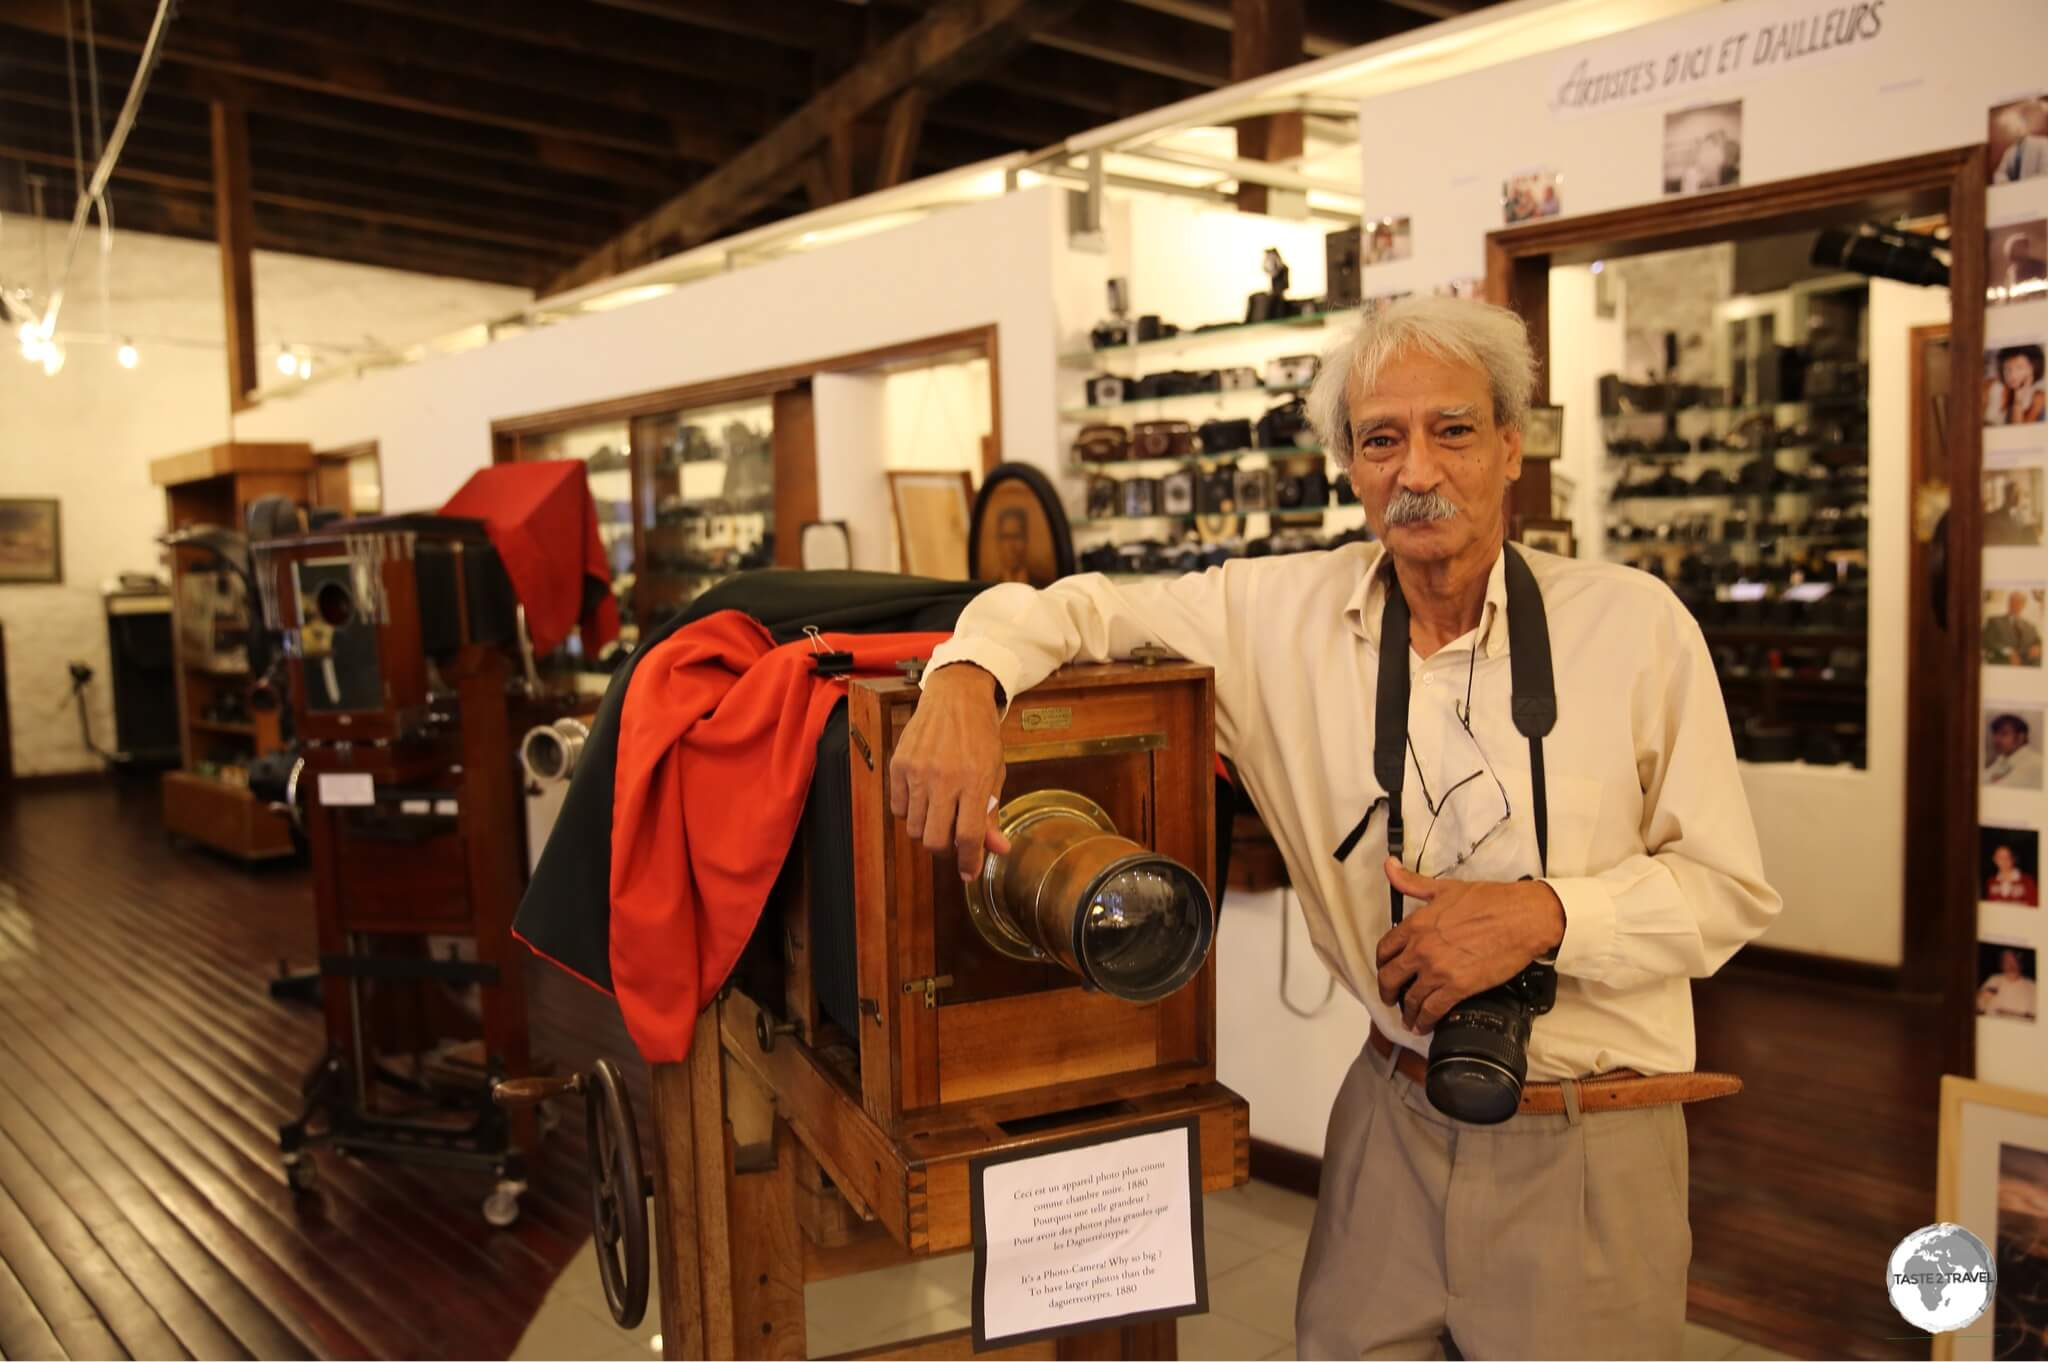 Mr Tristan Bréville is the founder of the Photographic Museum and the owner of the largest photographic archive of Mauritius.